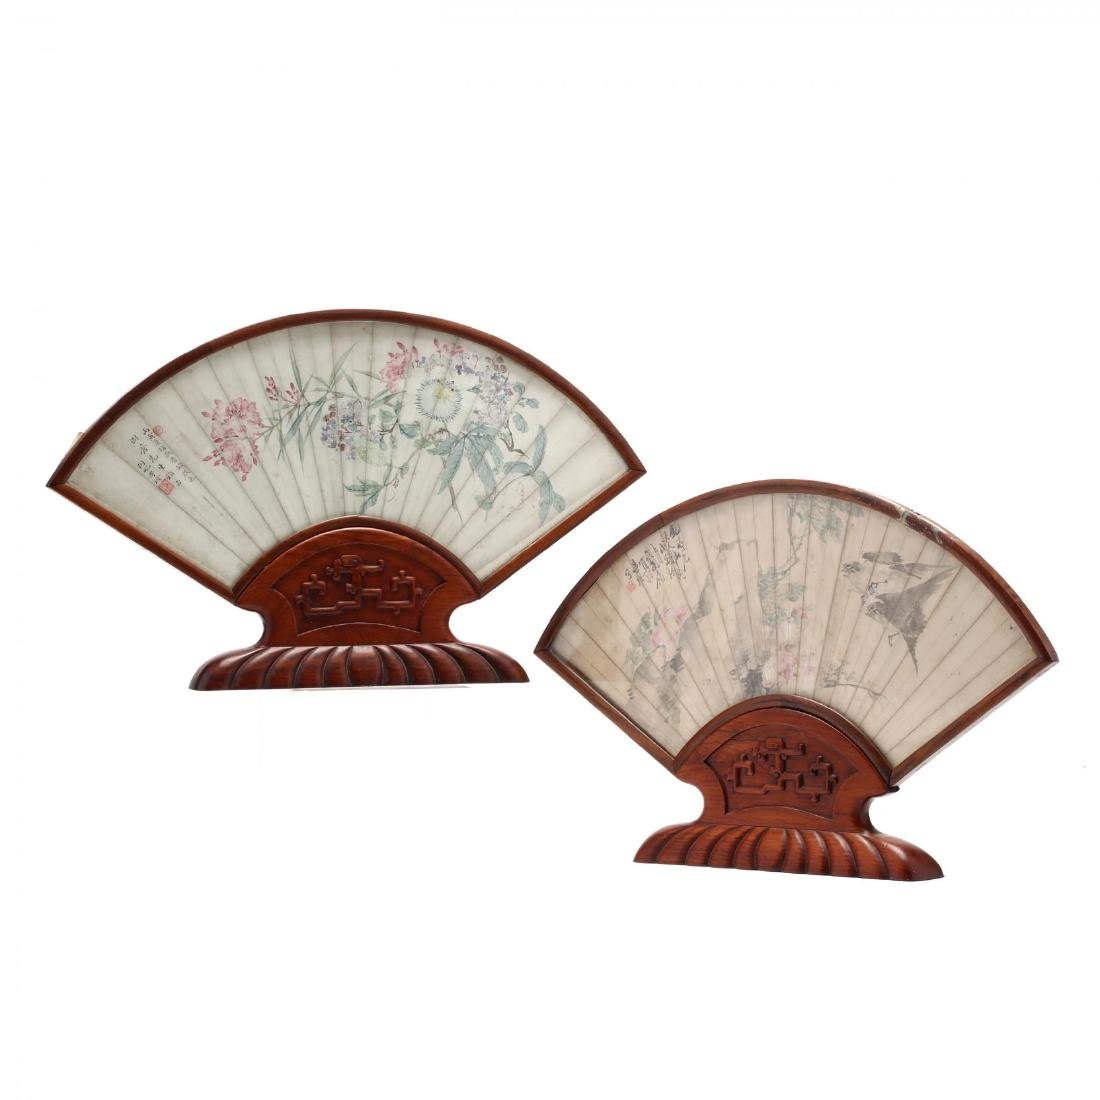 A Matched Pair of Chinese Framed Fan Face Paintings